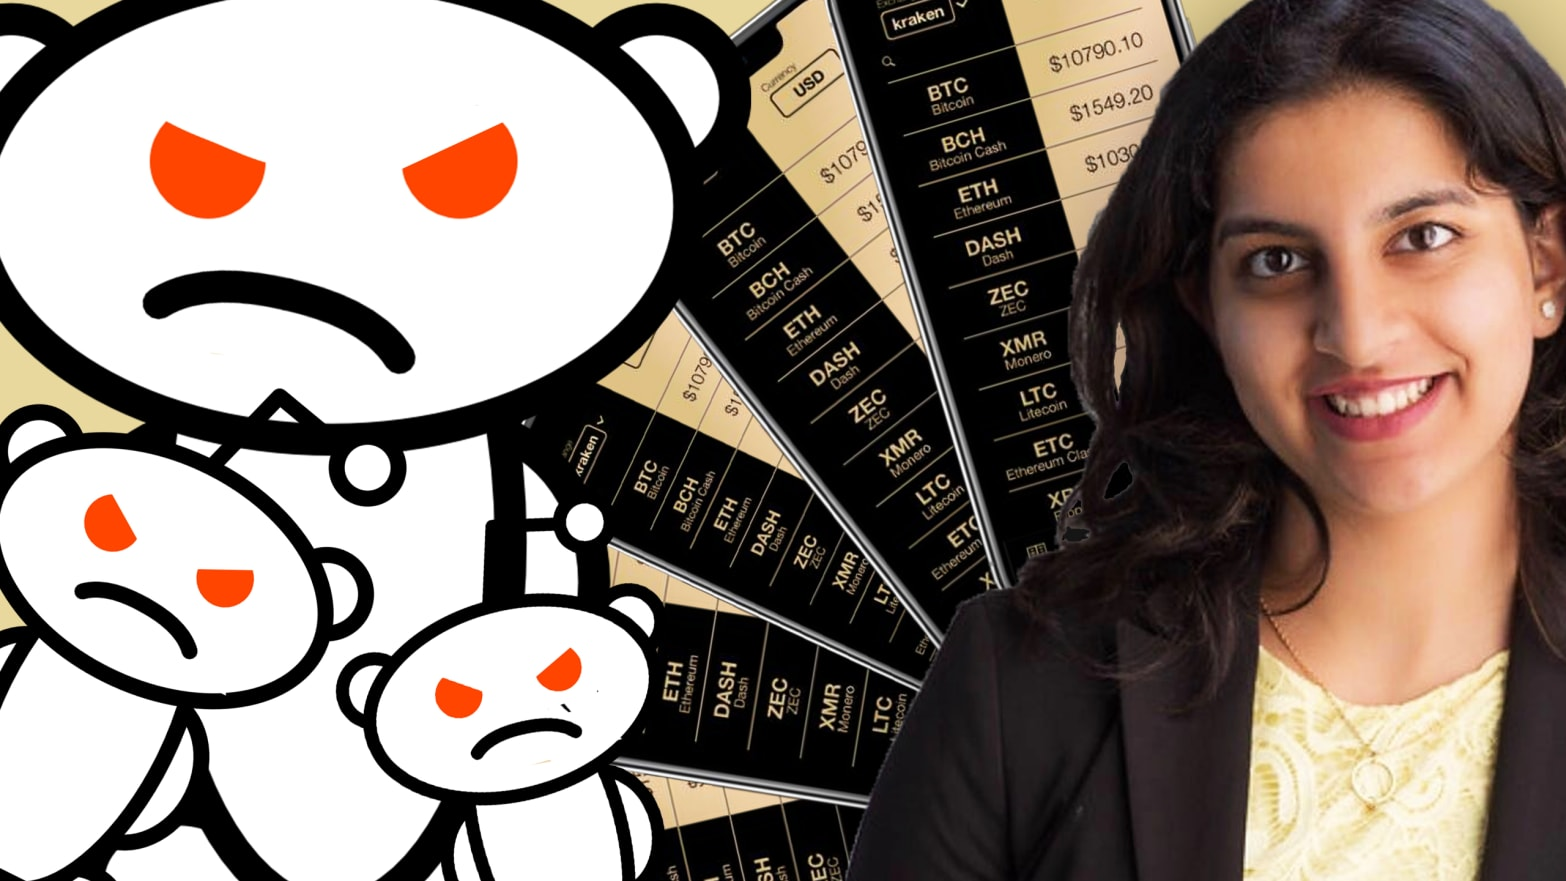 Reddit Terrorizes Another Teen, This Time Over the Bitcoin